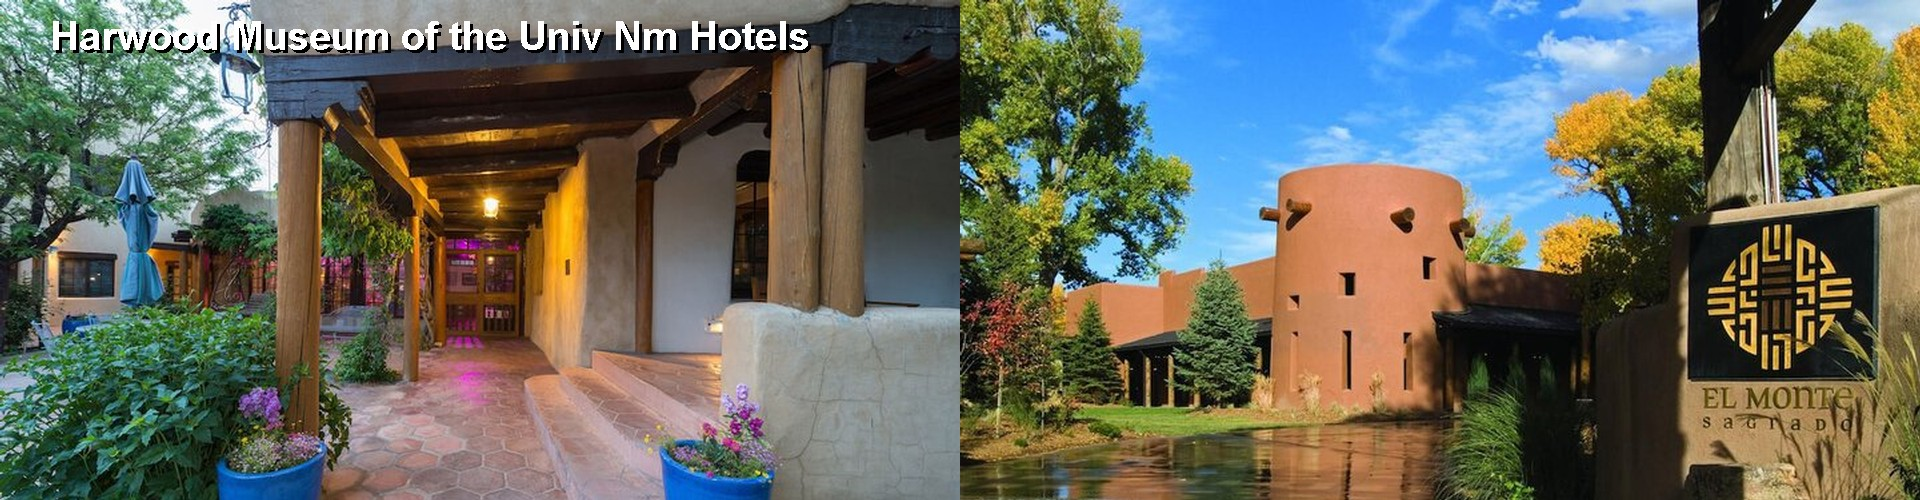 5 Best Hotels near Harwood Museum of the Univ Nm